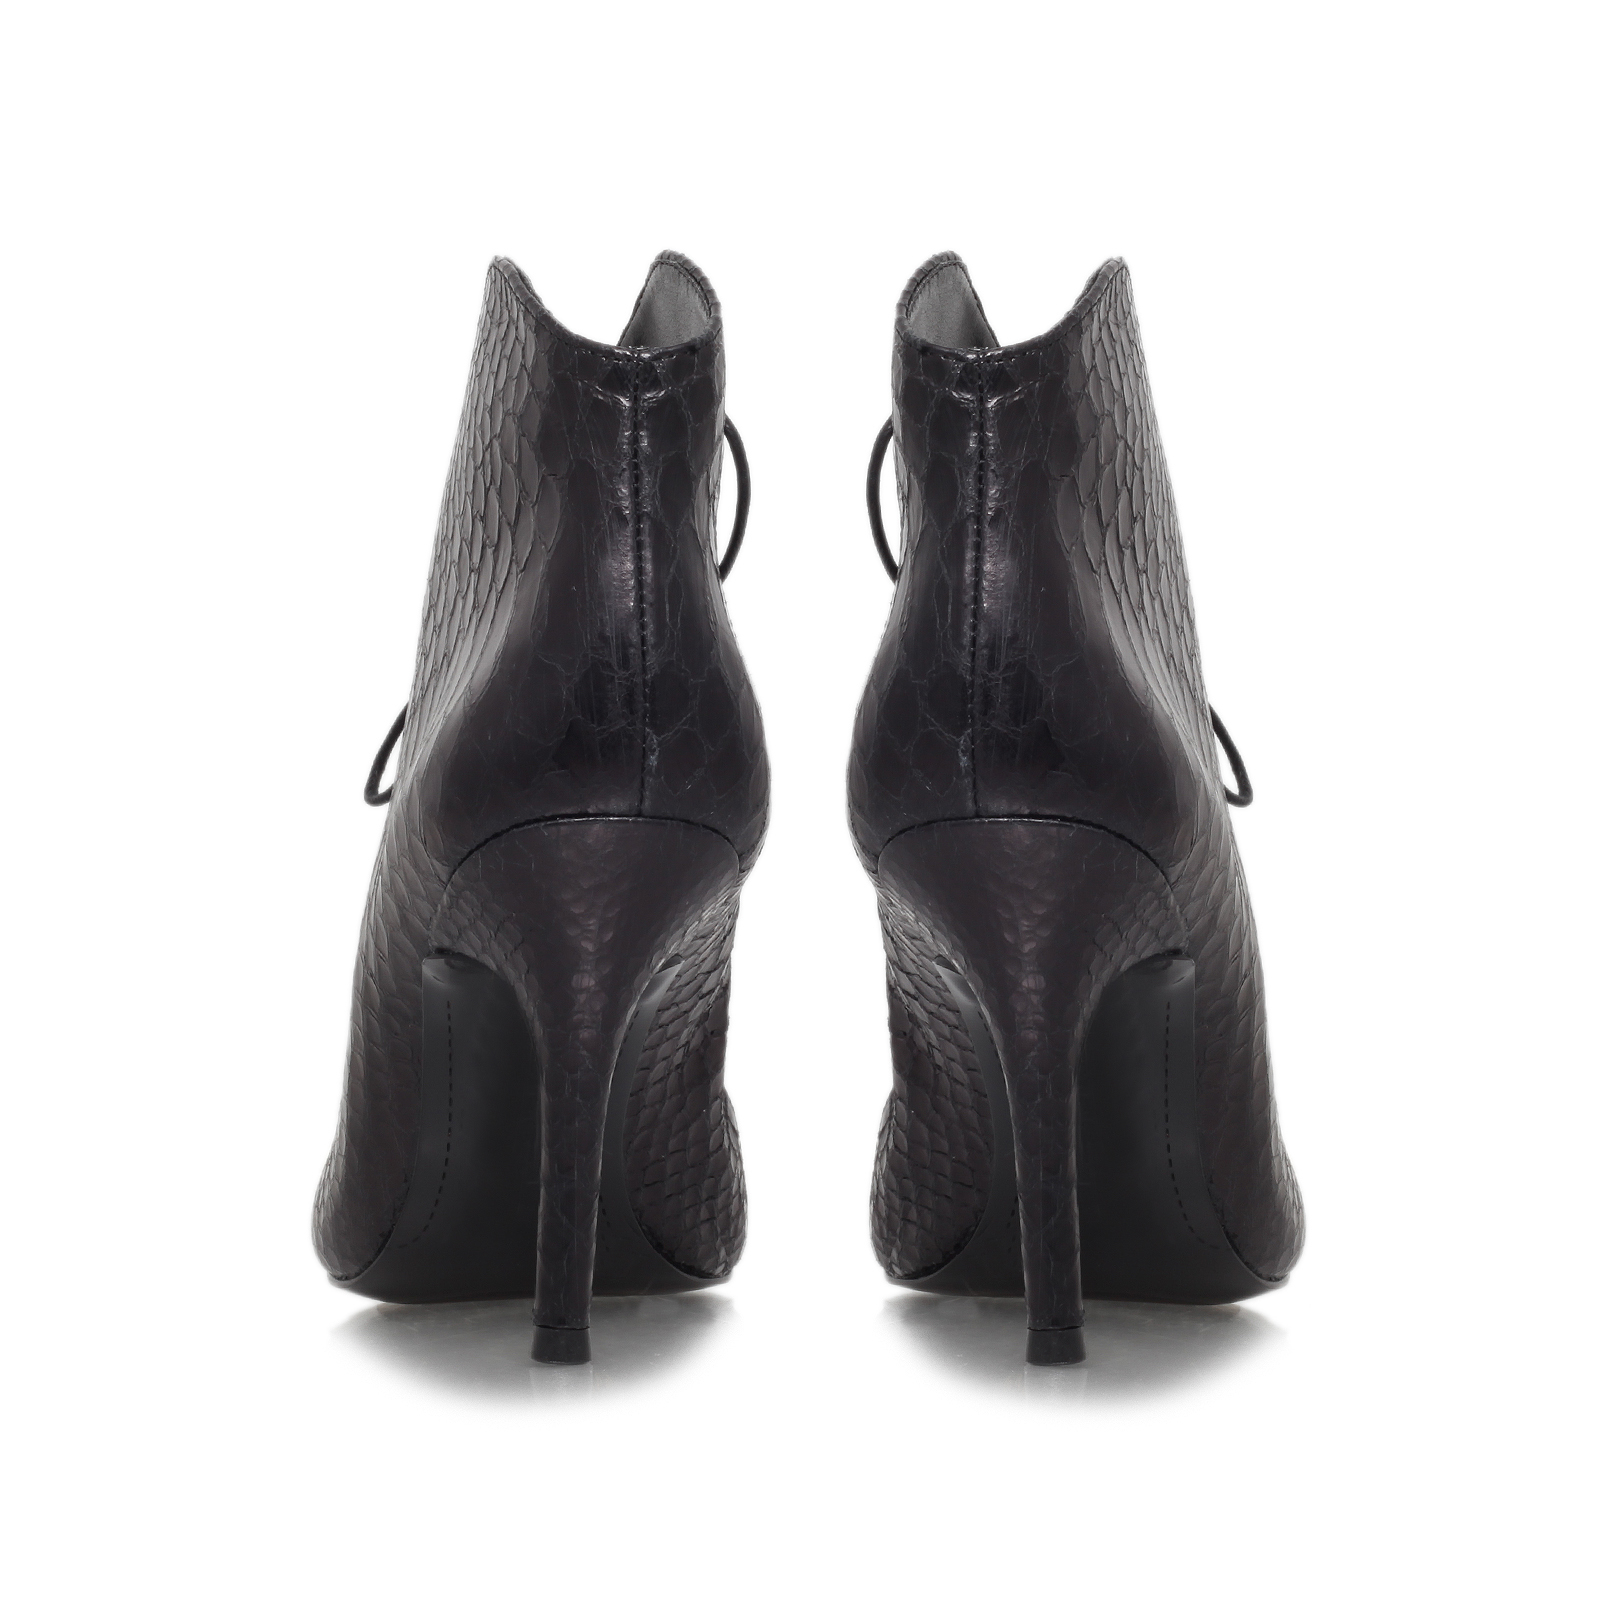 Vince Camuto Cailyn Black High Heel Boots By Vince Camuto